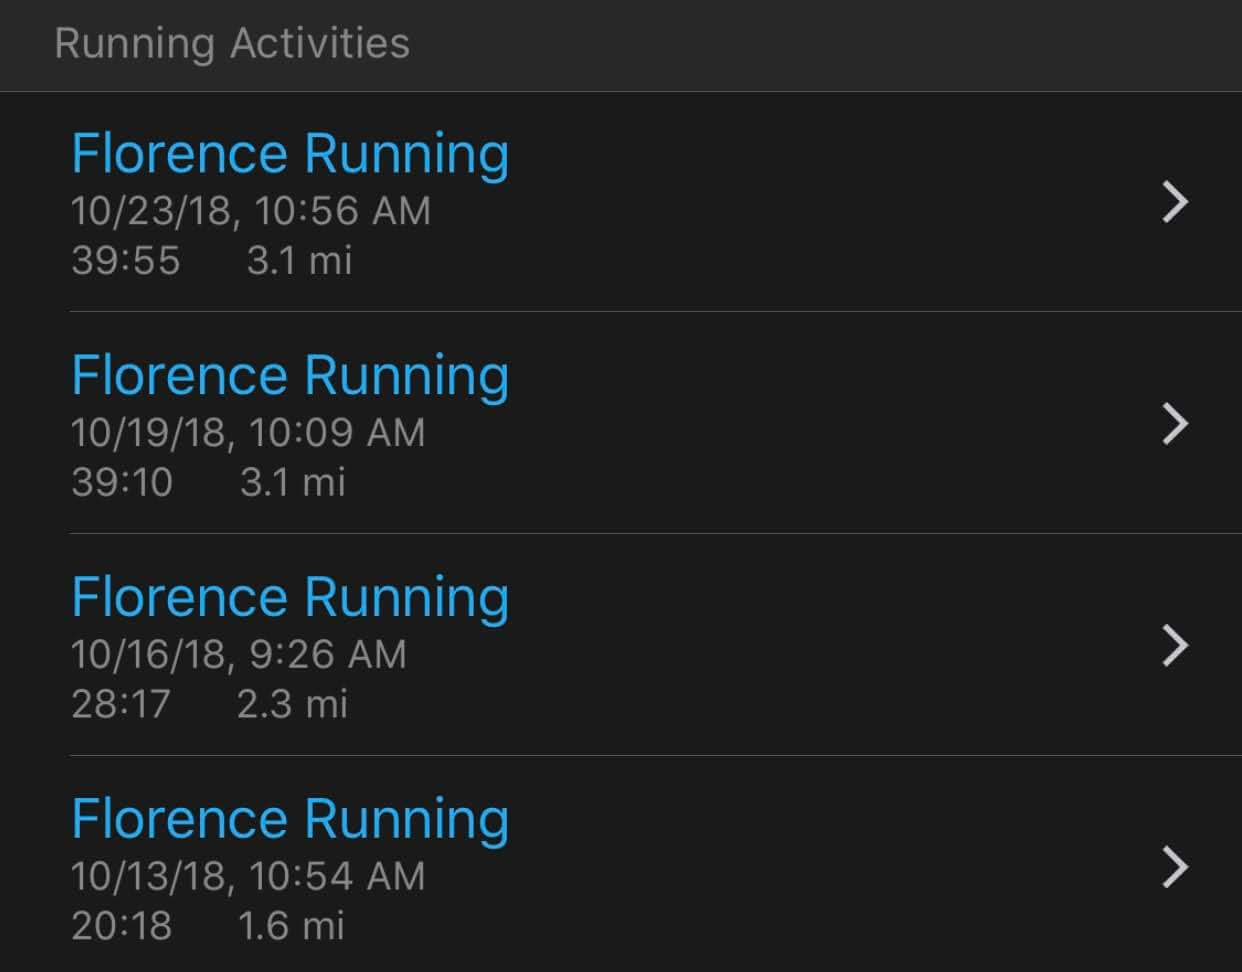 My attempts to begin running again amidst grief and depression